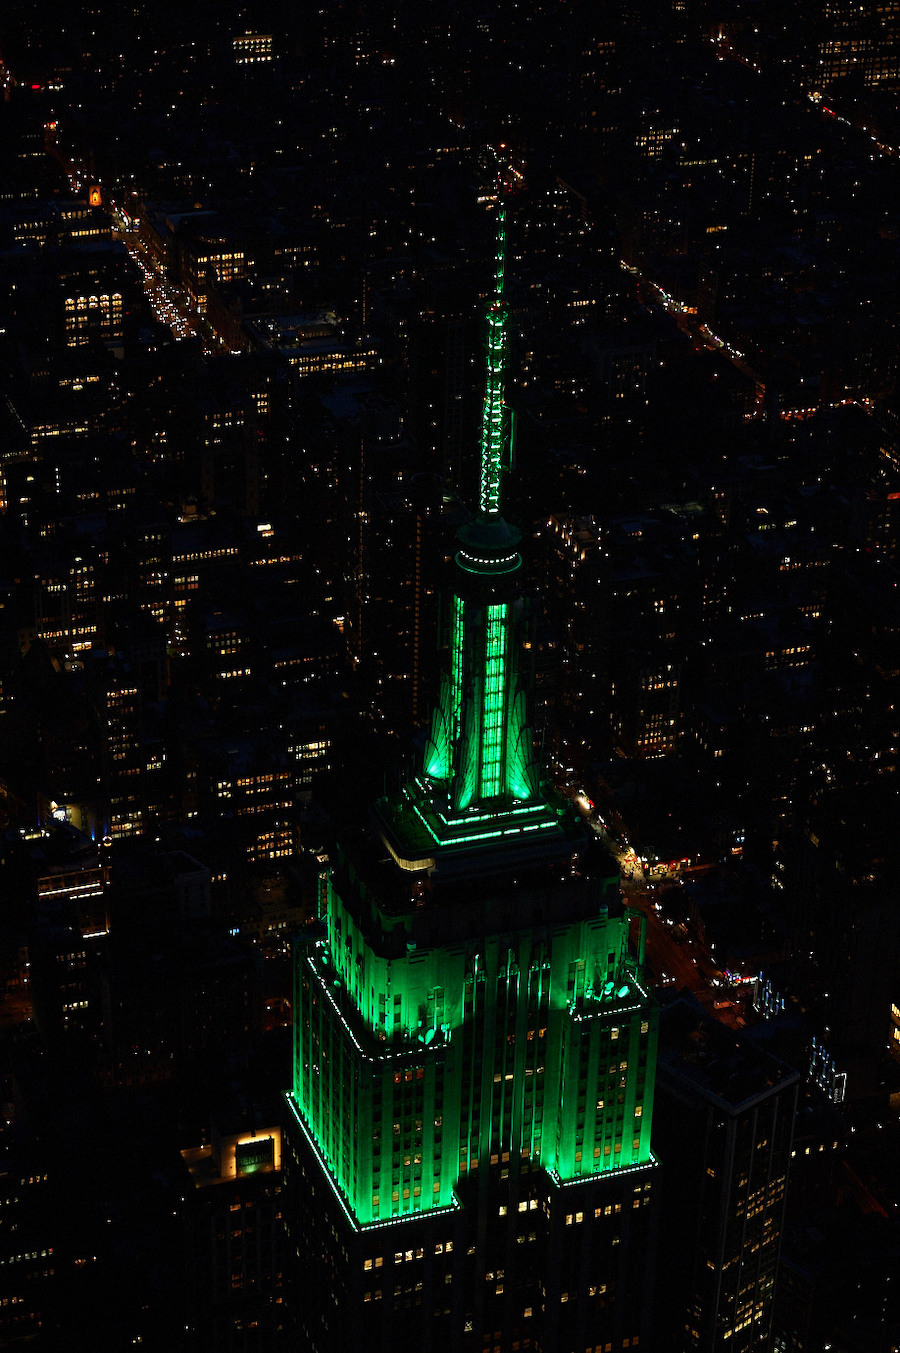 The Empire State Building image is a registered trademark of ESRT Empire State Building L.L.C. and is used with permission.